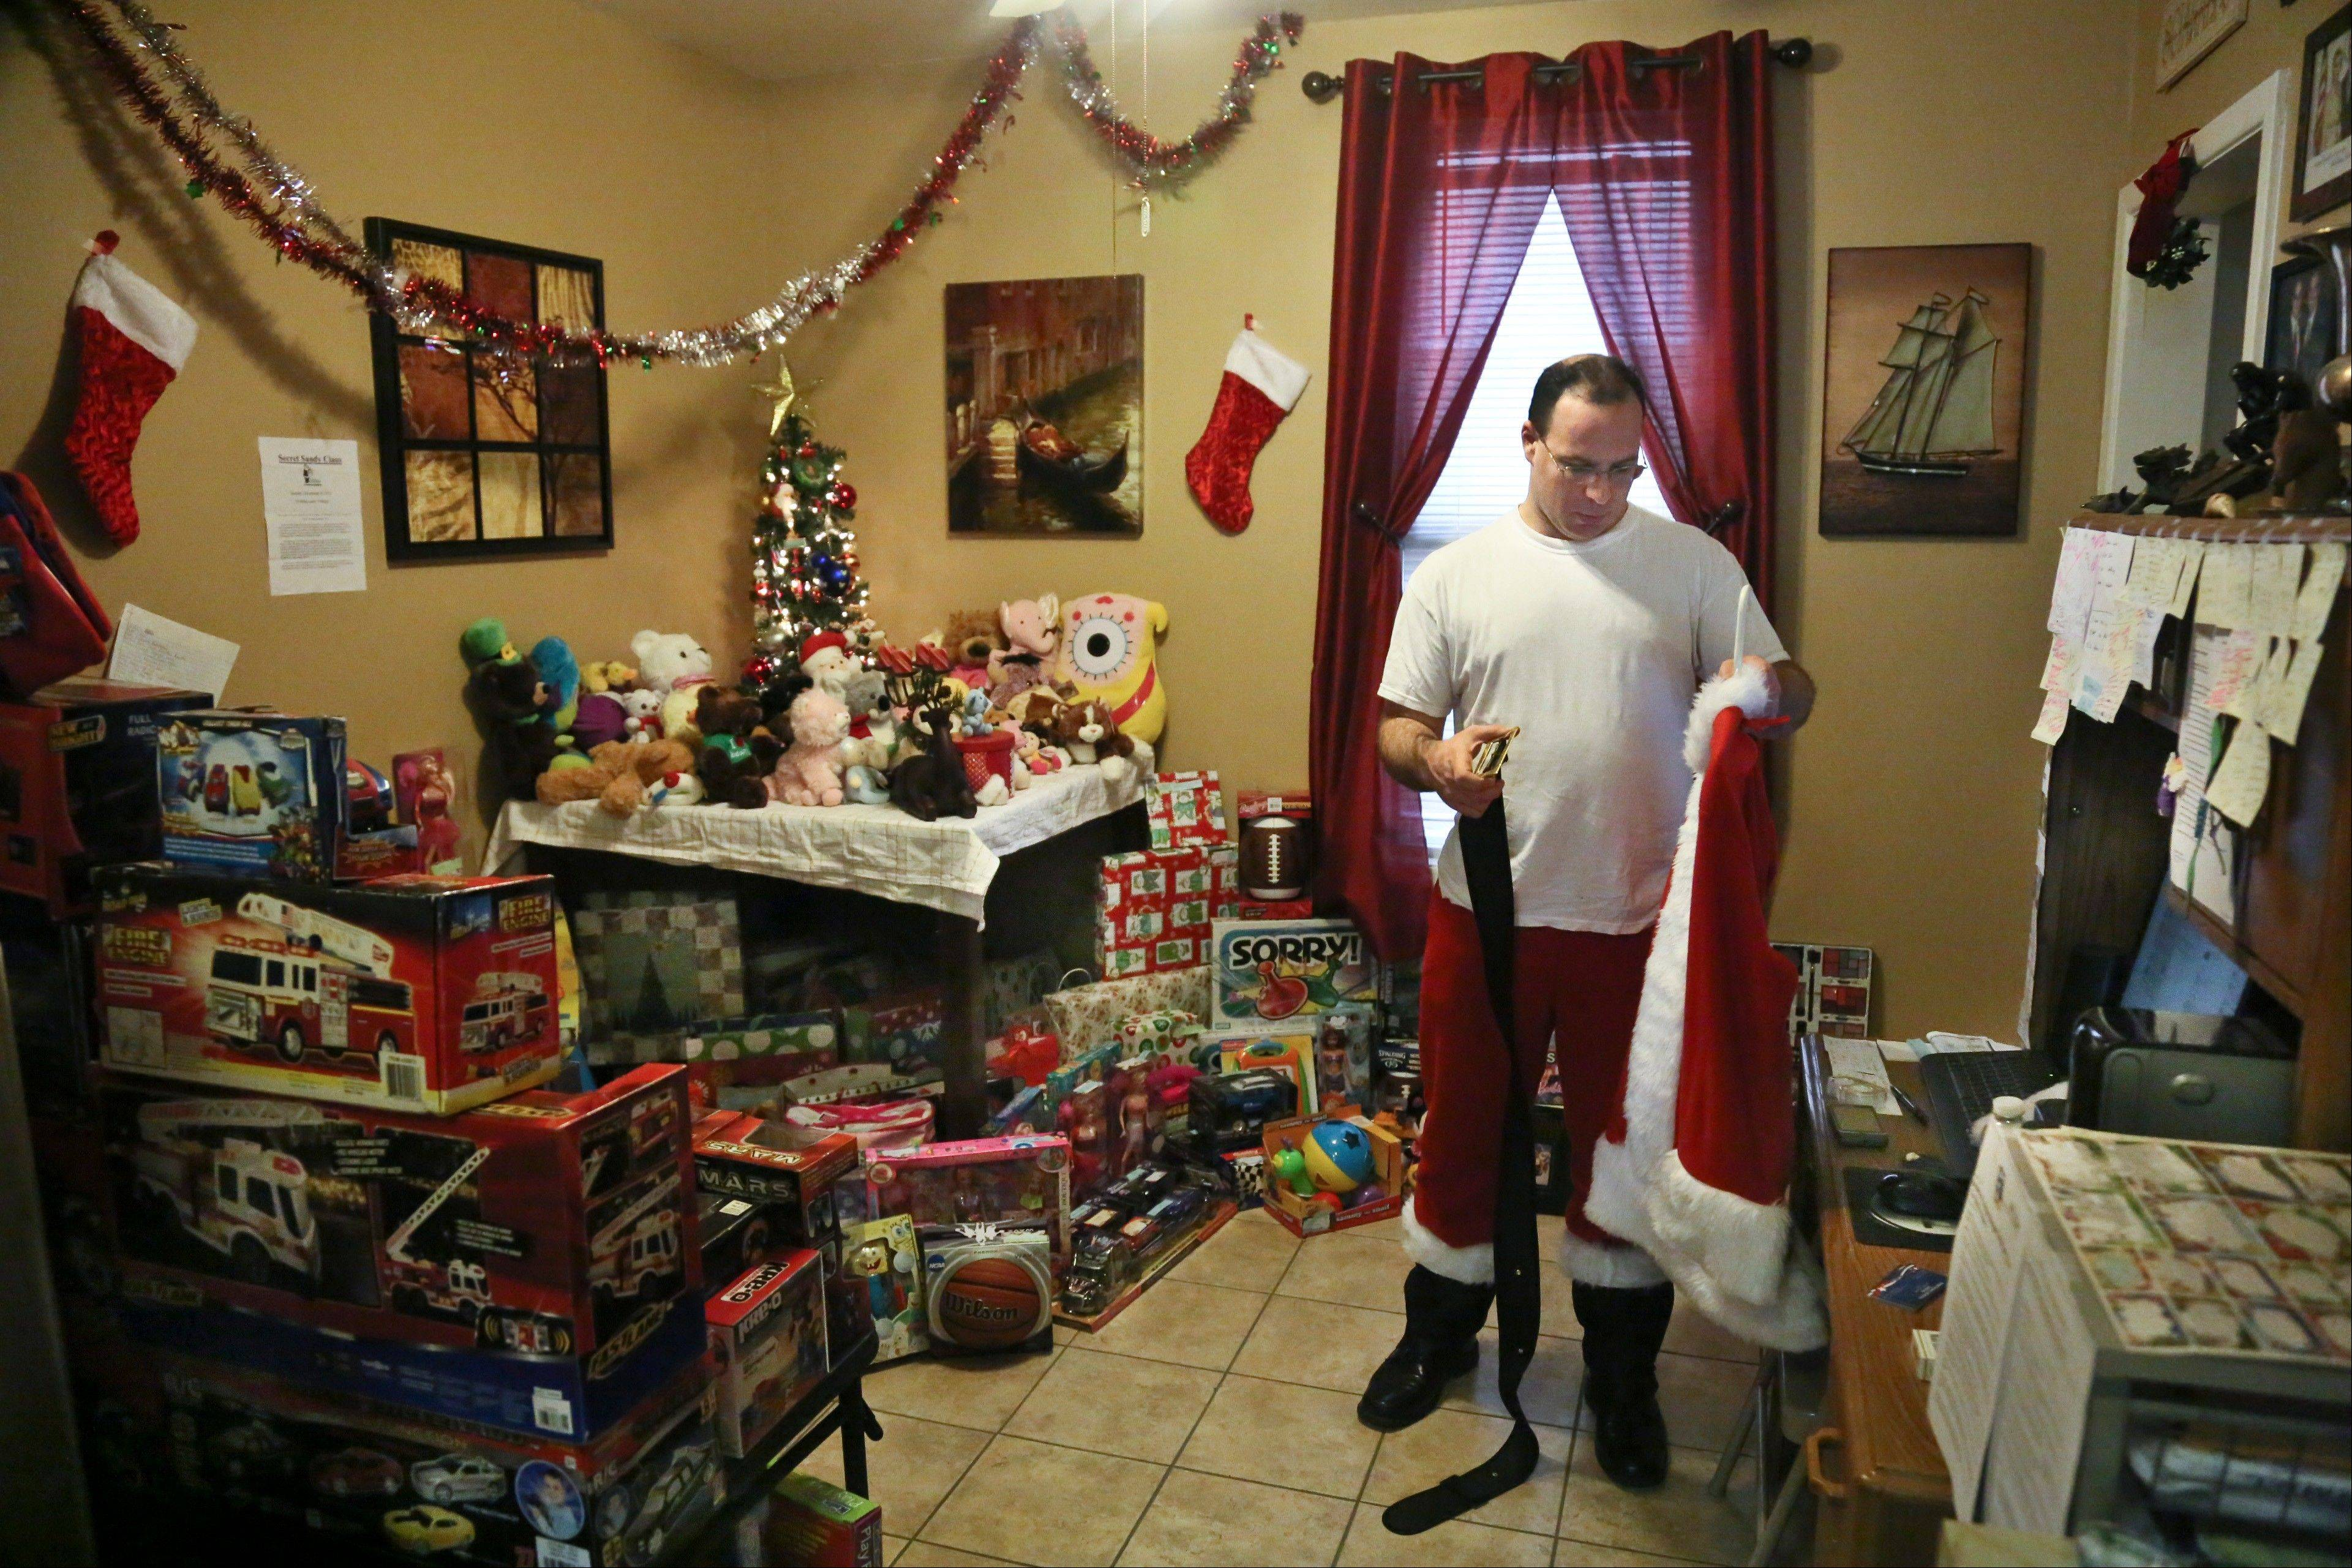 Michael Sciaraffo, a political consultant who has worked for Hillary Clinton and City Hall, is surrounded by donated toys as he prepares his Santa Claus costume, in the Brooklyn borough of New York. Using Facebook, Sciaraffo started a charitable enterprise to collect and personally deliver toys to children affected by Superstorm Sandy victims dressed as Santa Claus.